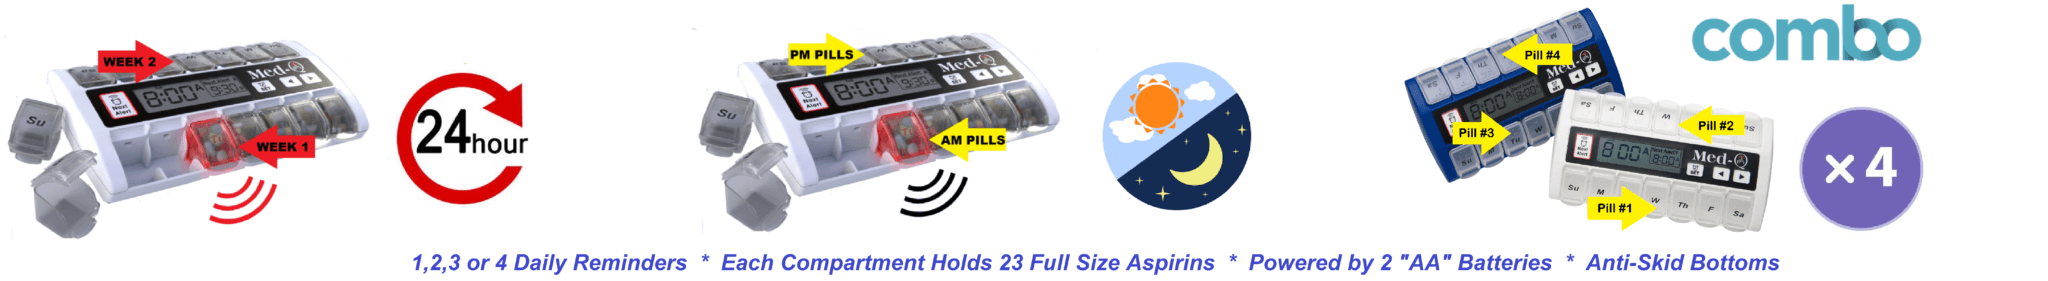 pill box with alarm